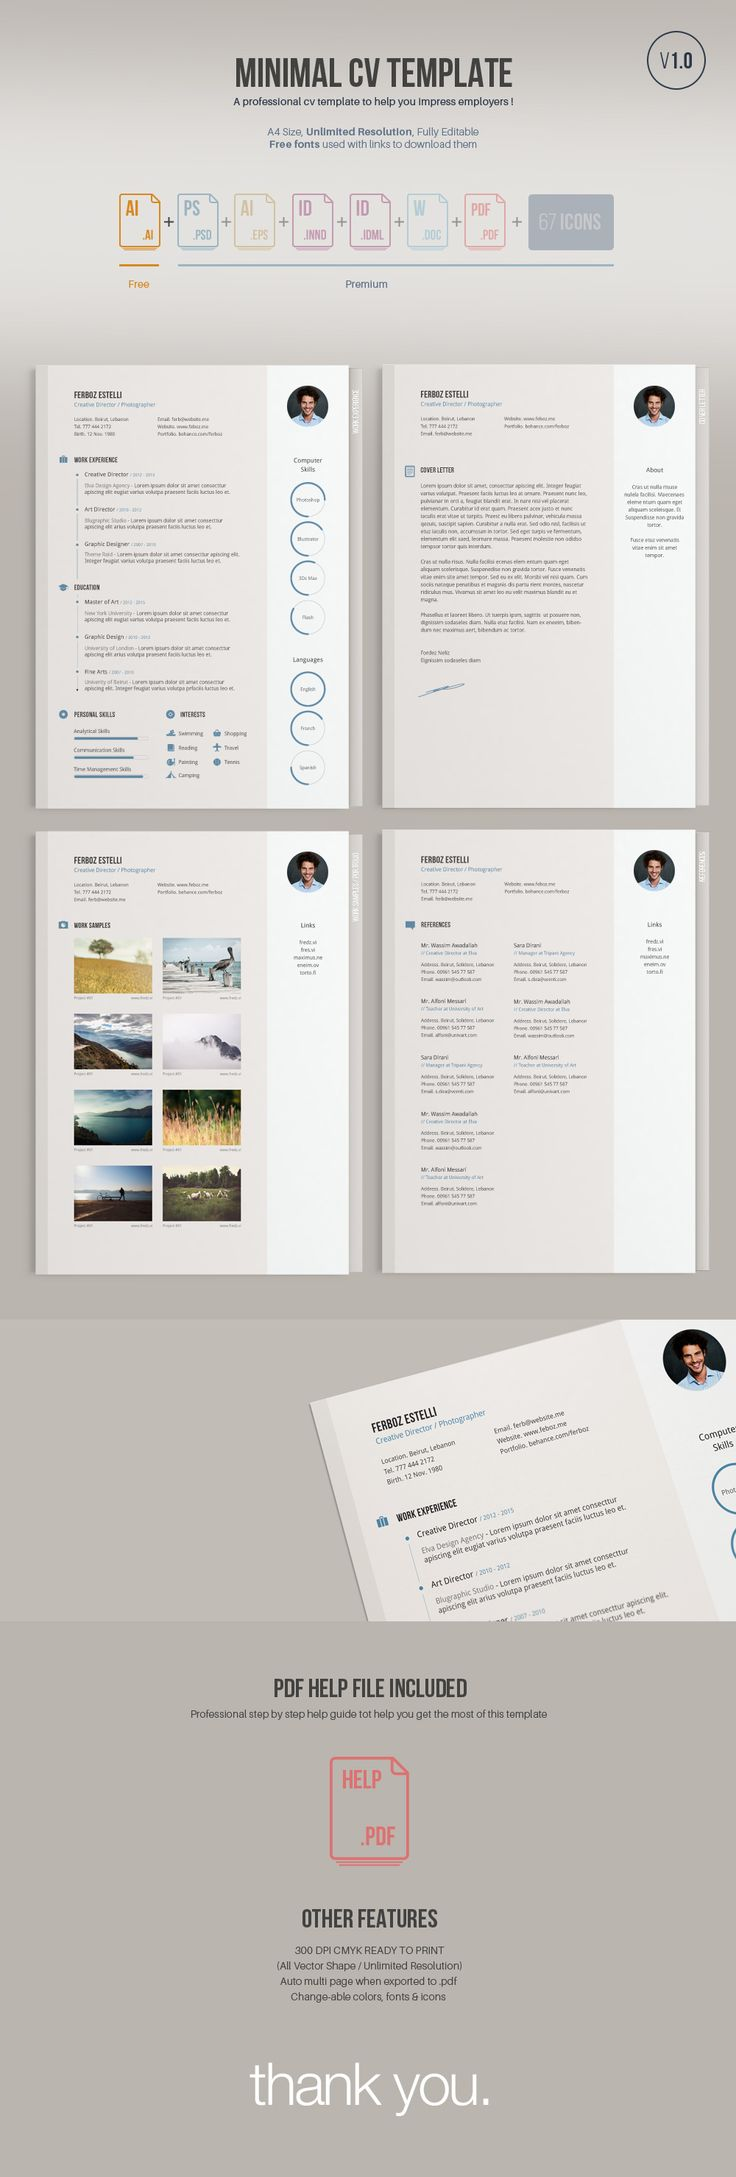 Fantastic 10 Best Resume Writers Huge 100 Square Pool Template Solid 100 Winning Resumes For Top Jobs Pdf 16 Year Old Resumes Young 2.25 Button Template Yellow2013 Resume Writing Trends 25  Best Ideas About Free Cv Template On Pinterest | Cv Resume ..